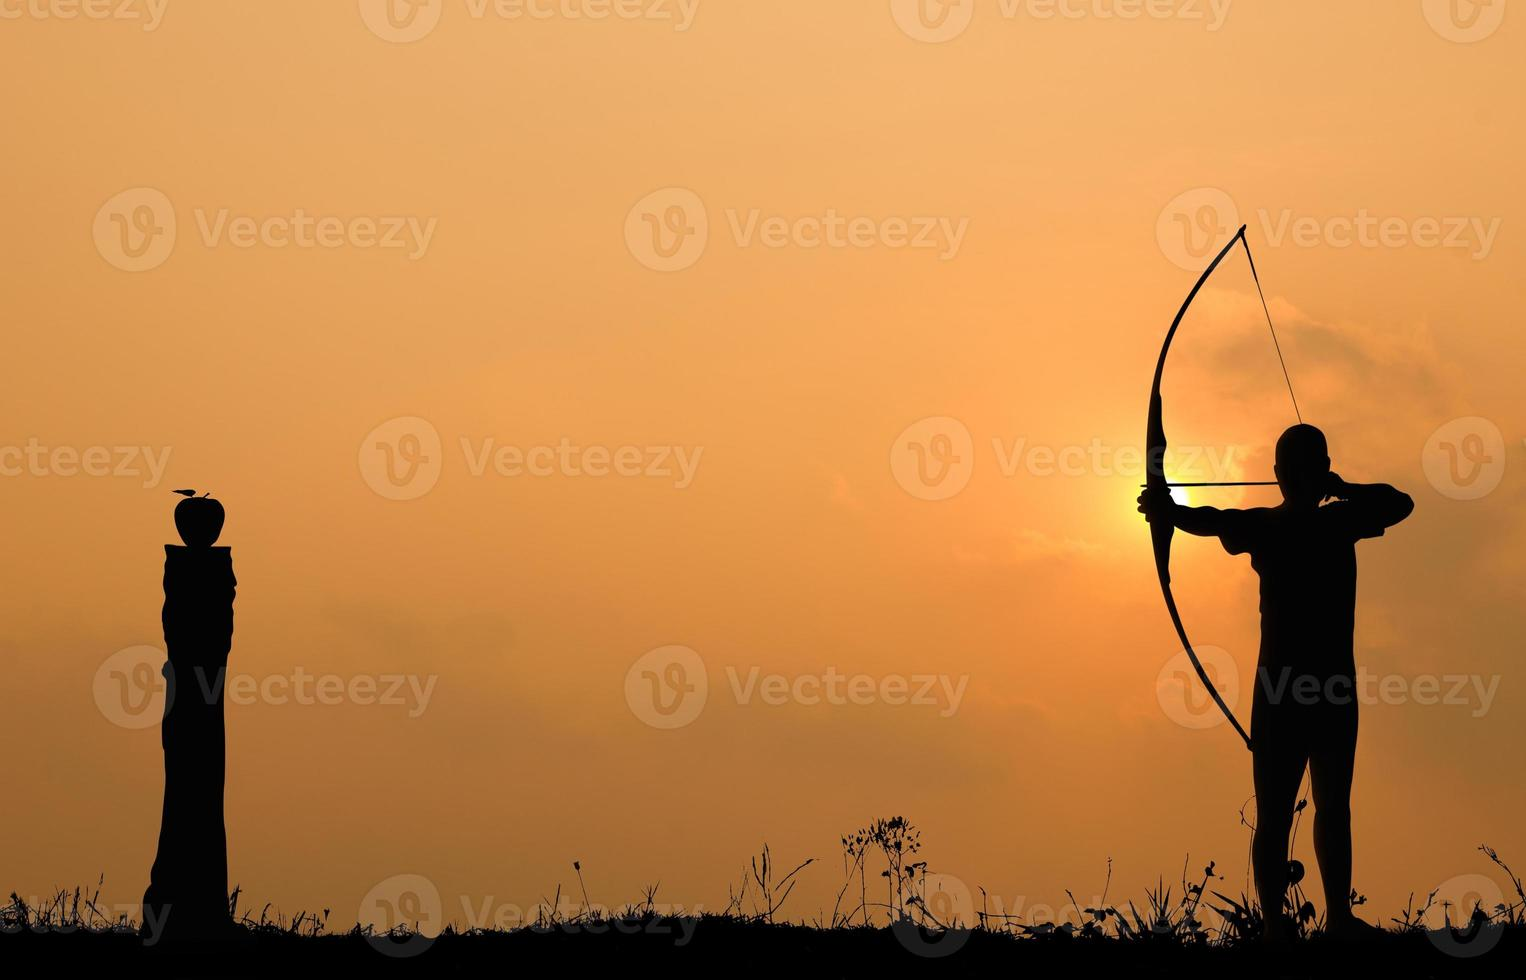 Silhouette archery shoots a bow at an apple on timber photo